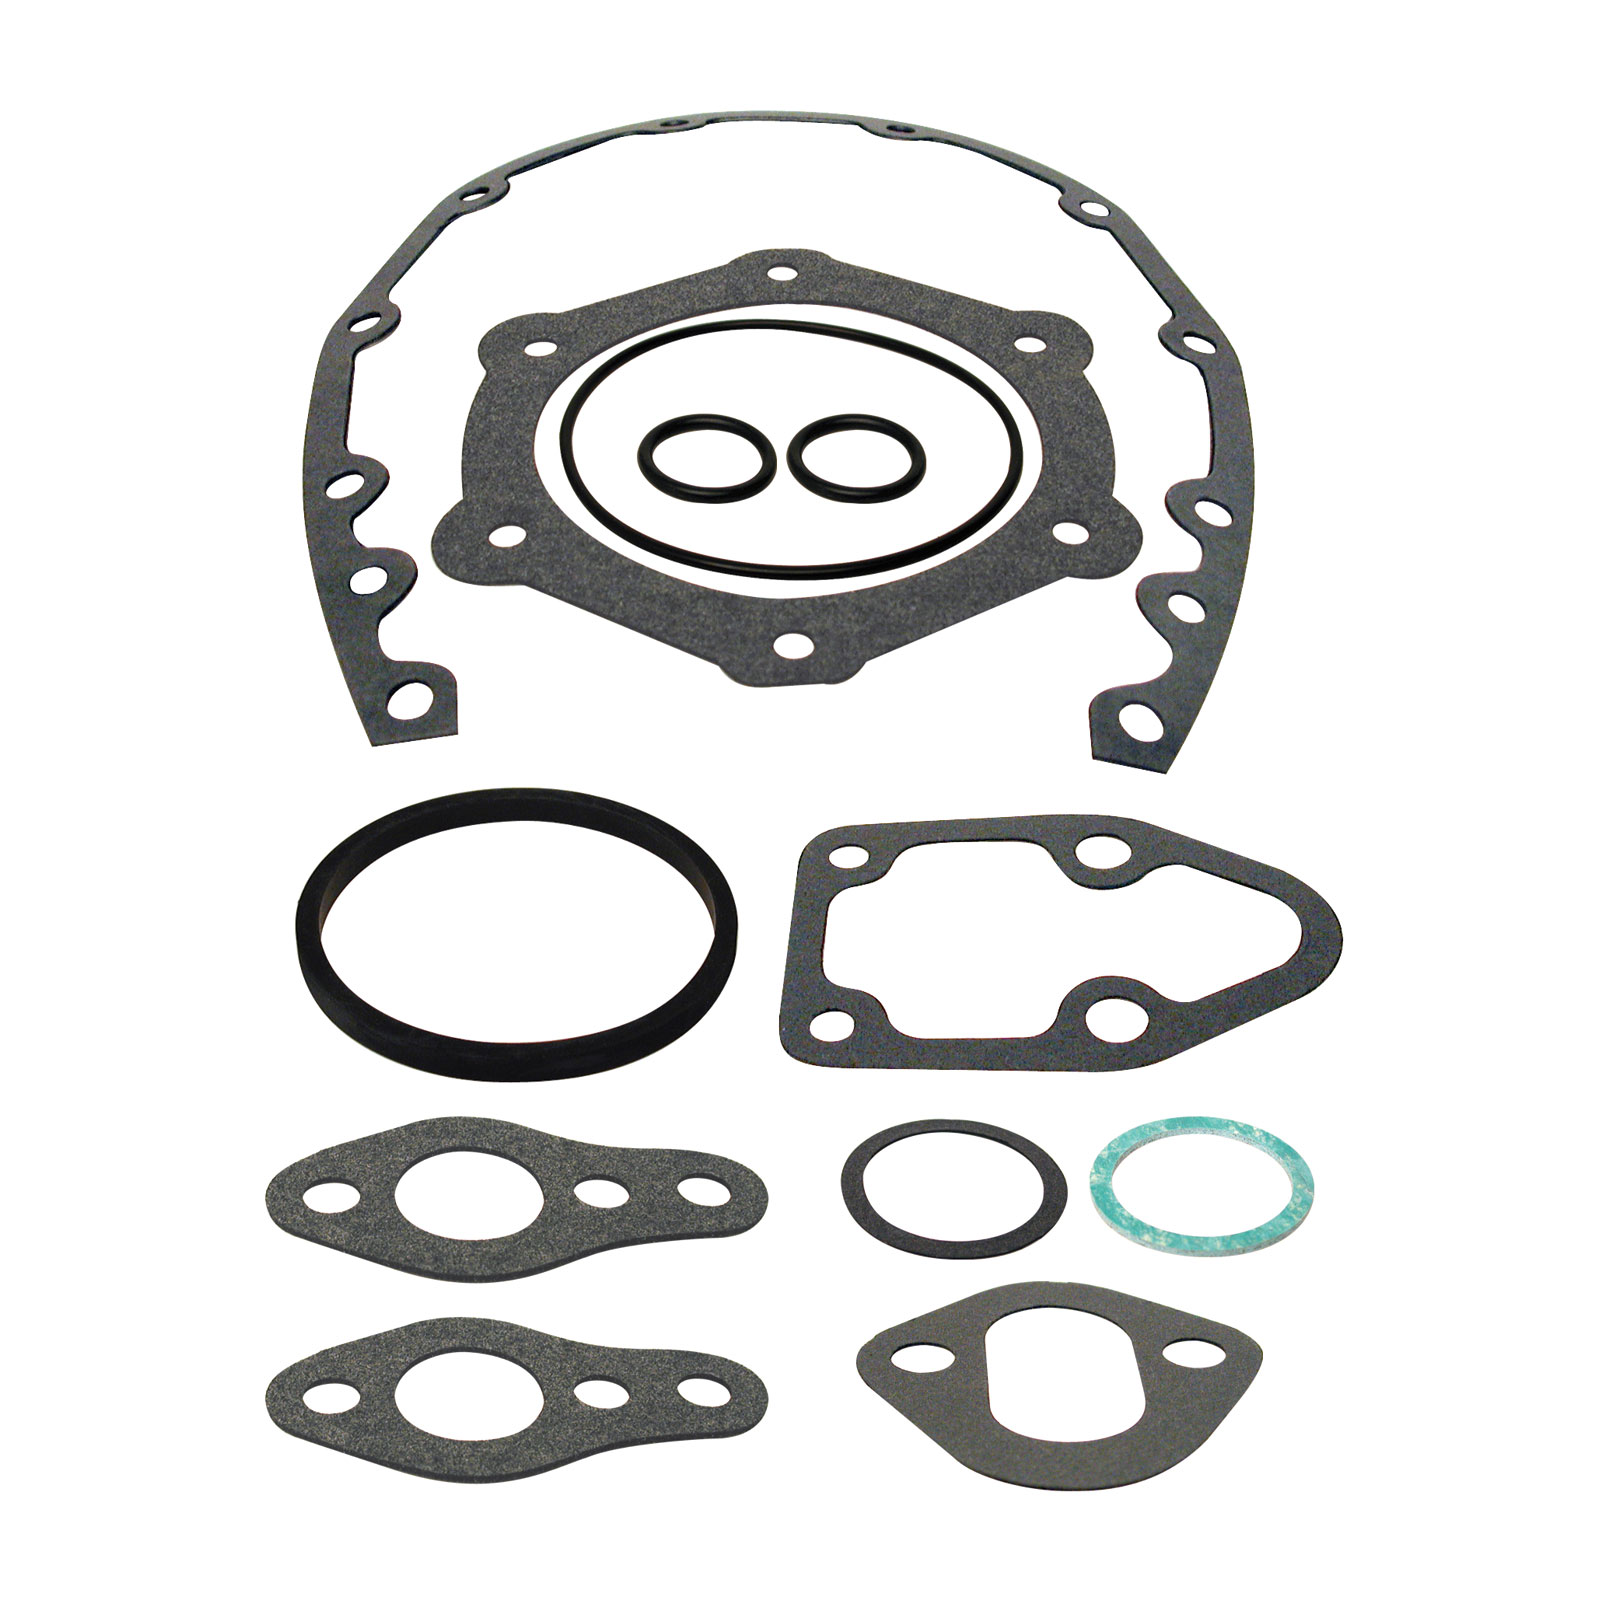 Timing Chain Cover Gasket Kit 27-34895A2